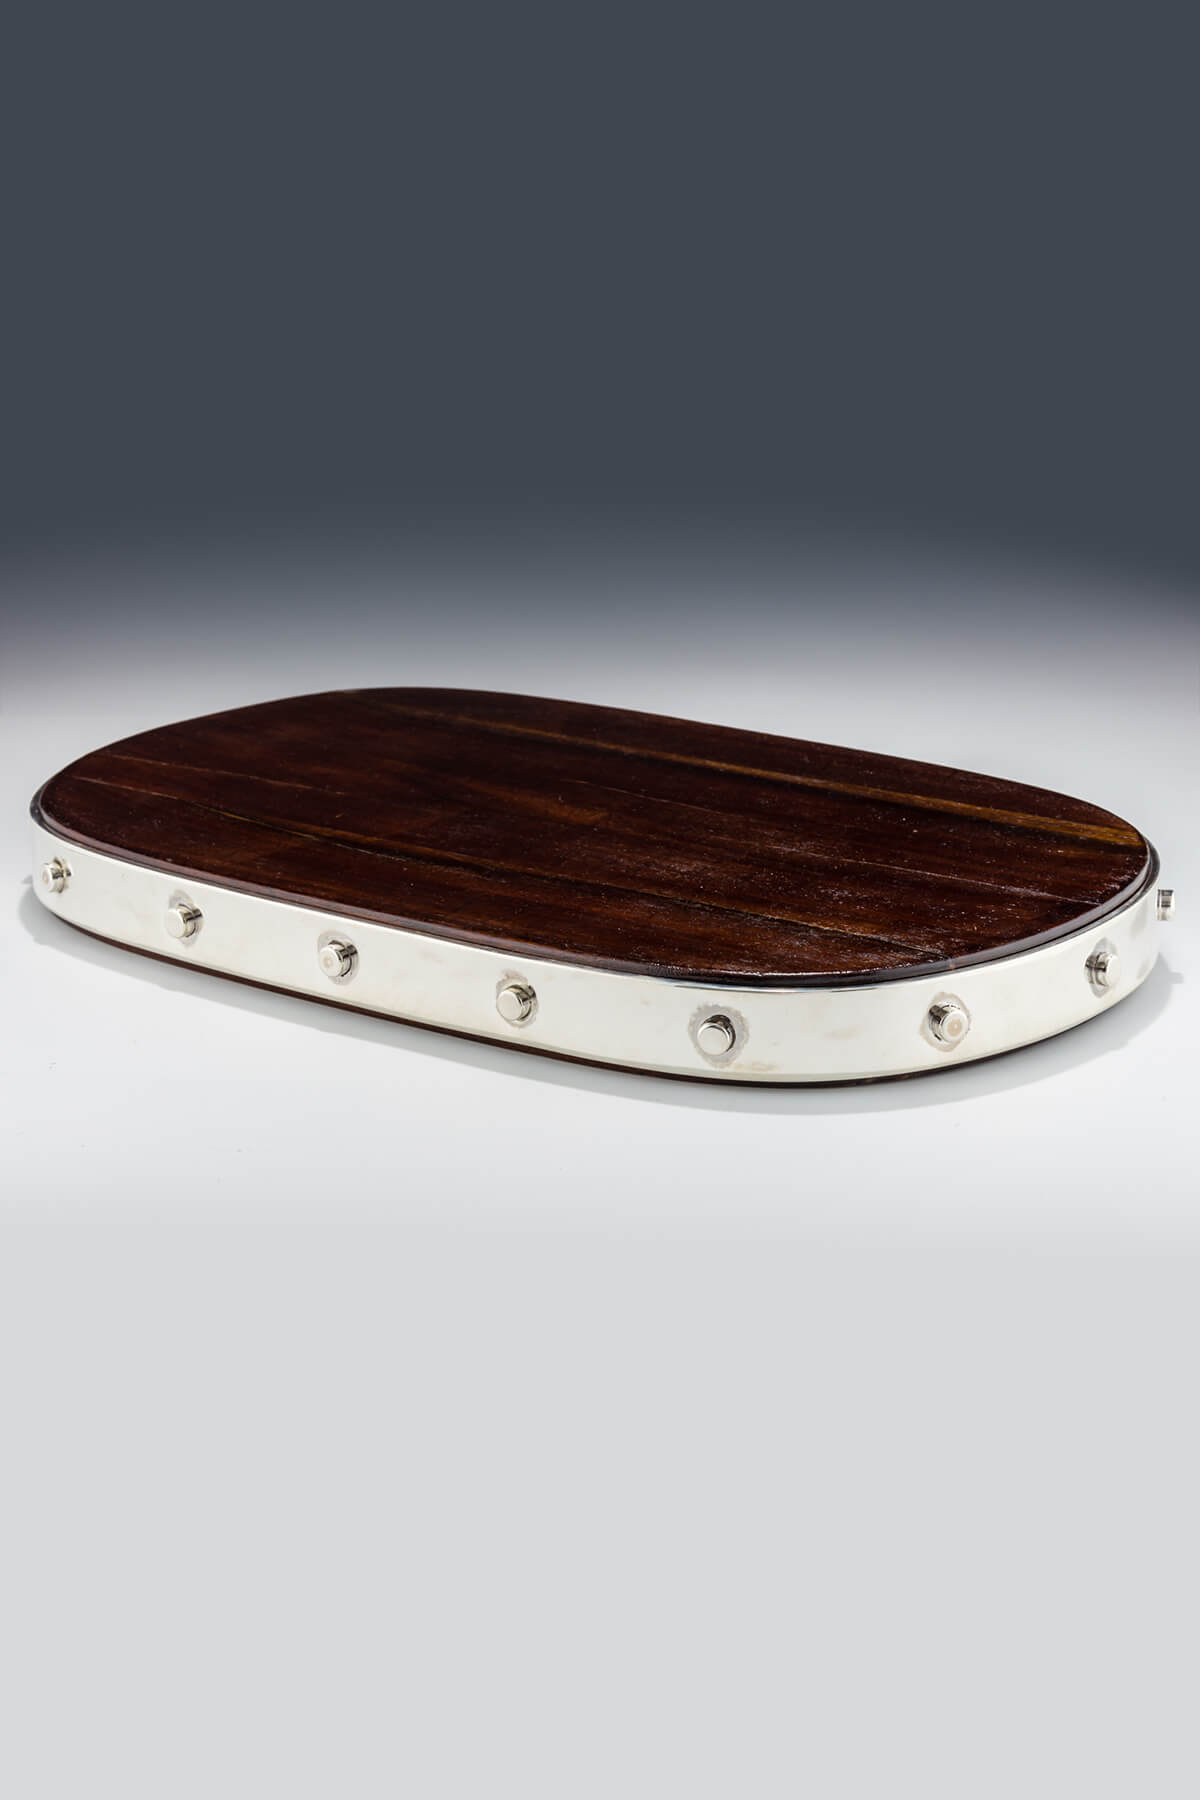 142. A Sterling Silver and Wood Challah Board by Arie Ofir